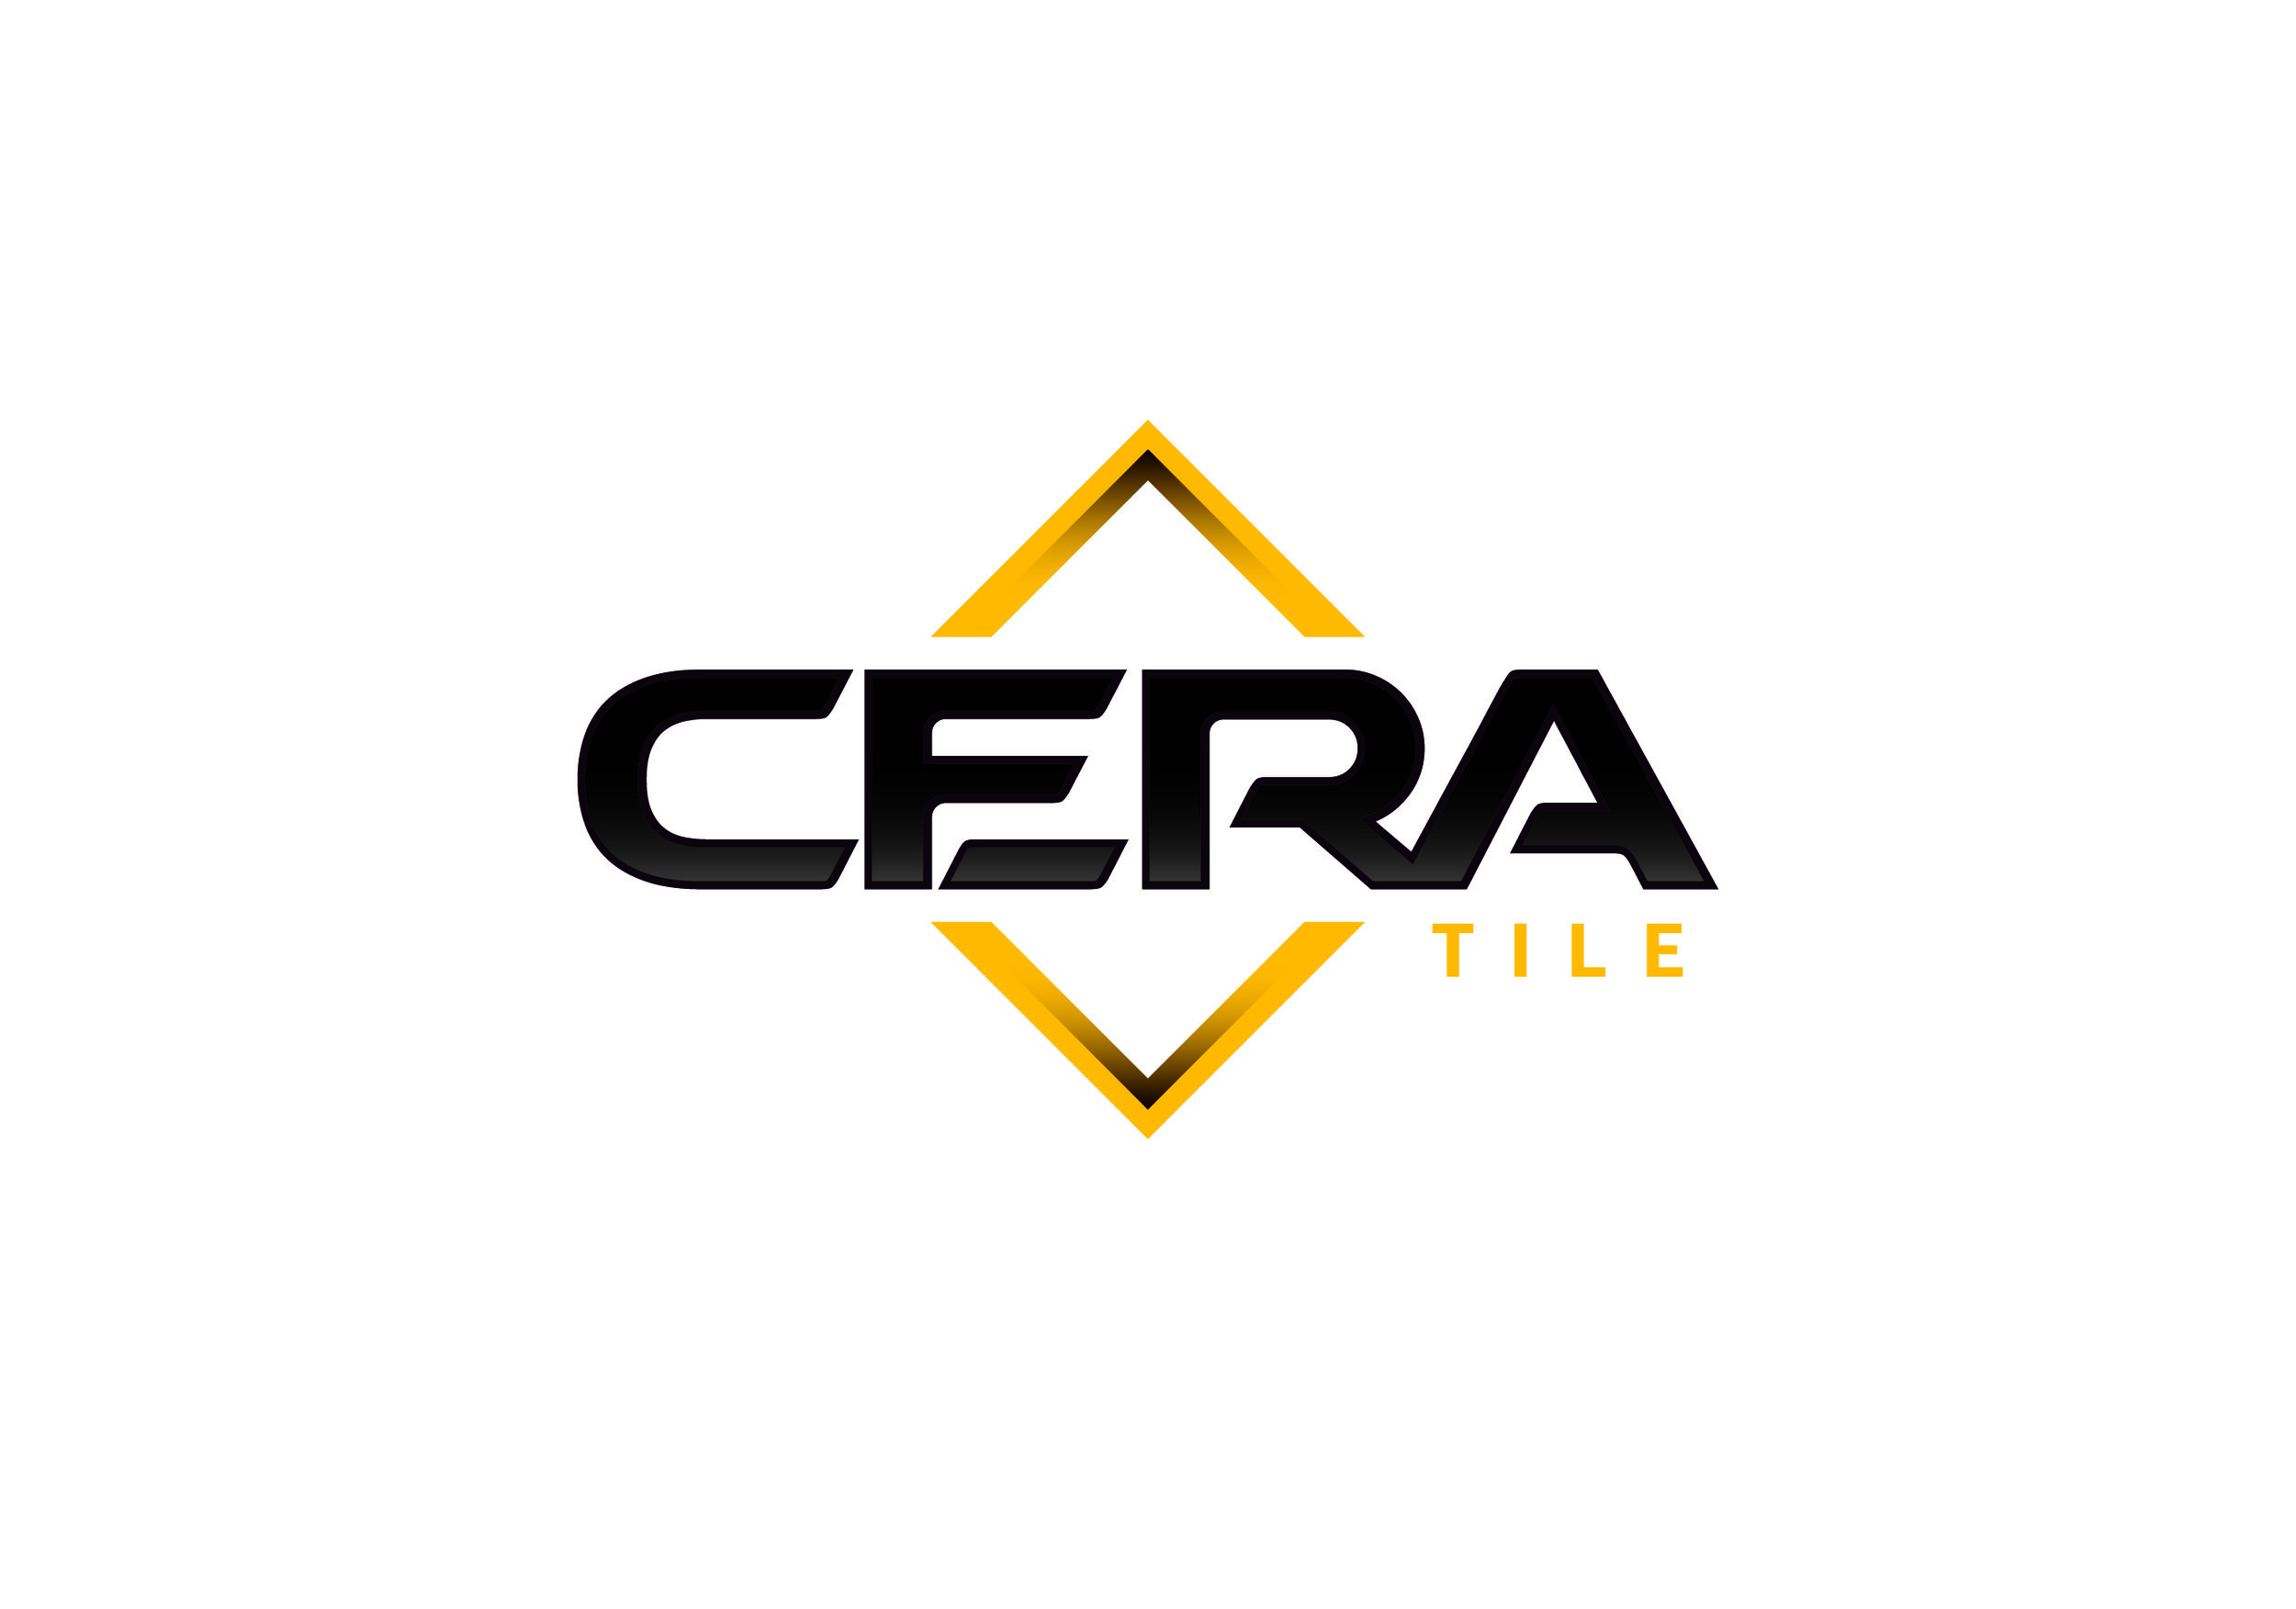 Cera Tile - Cera Tile, recently founded in April 2012, is the newest and fastest growing tile importer and wholesale distribution company in the United States. We are changing the experience for you the tile dealer to allow you more time to do what you do best and help your customer design the room of their dreams. Cera Tile, recognizes that satisfied customers are essential to our continued success. A strong culture of excellent customer service, commitment, and trust are the values that dominate our daily business activities to help with industry solutions that in the end will help reach and receive our common company goals.